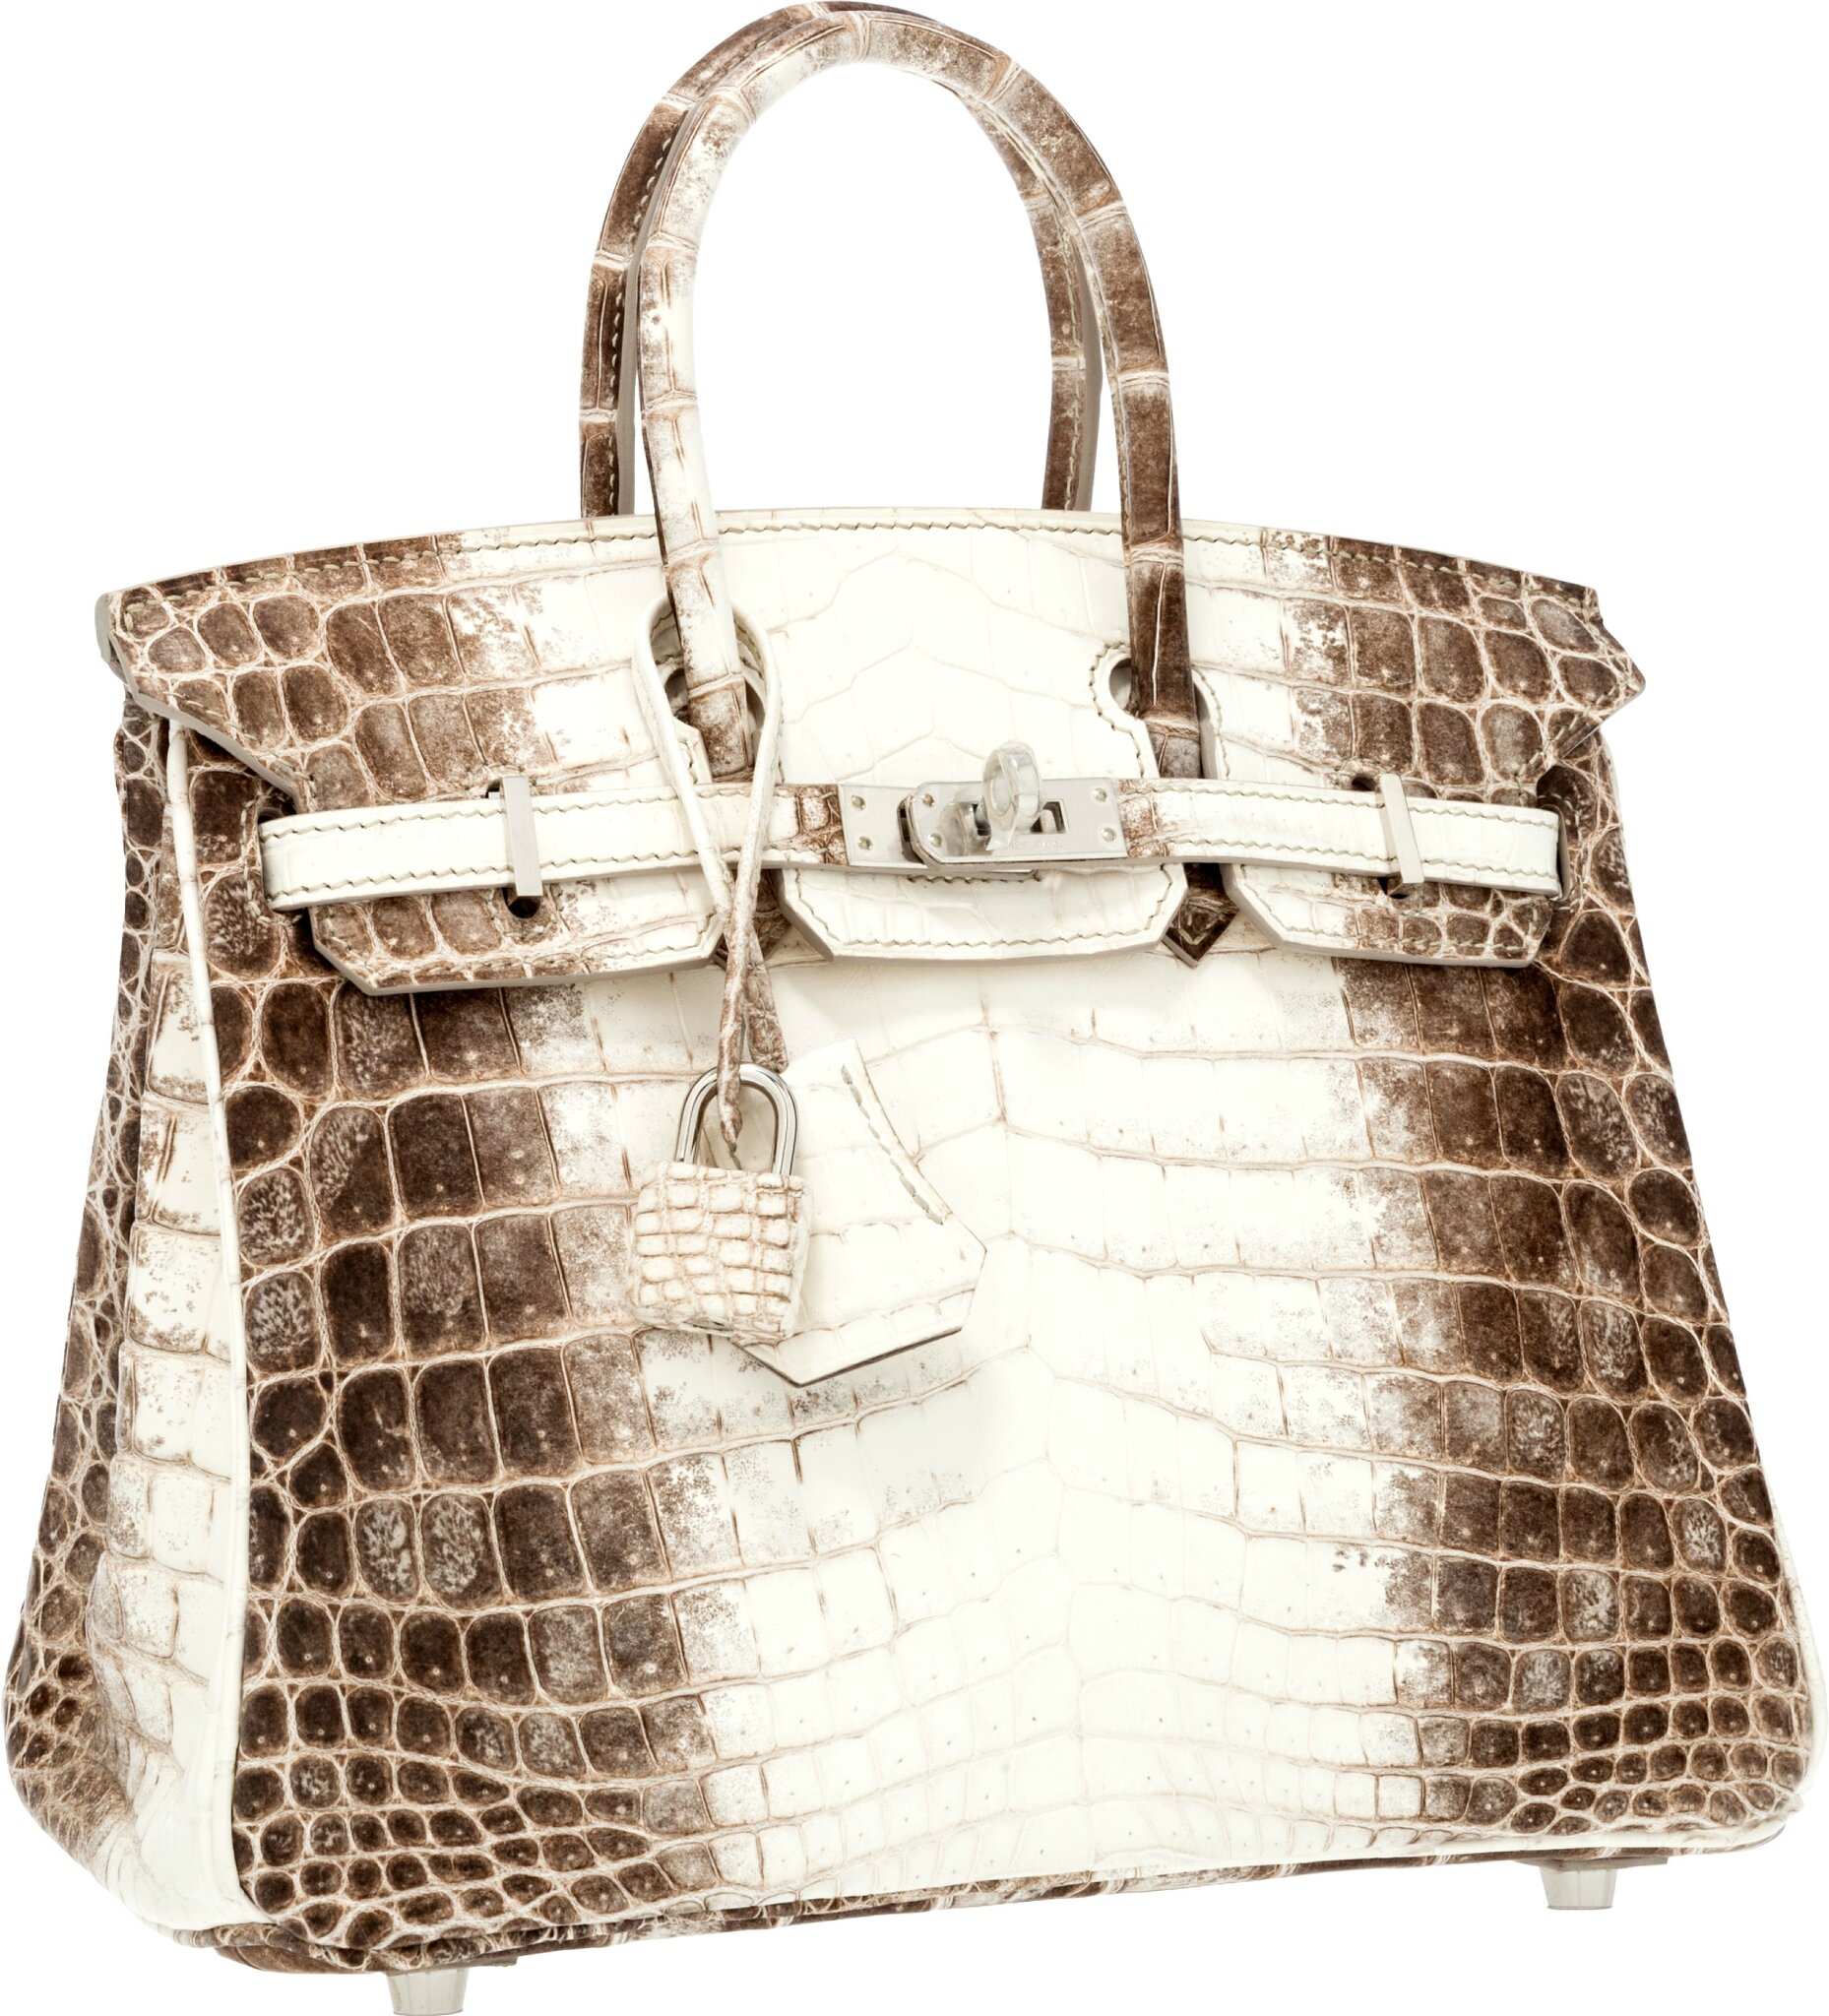 where to buy hermes birkin bags online - where to buy hermes bags in new york